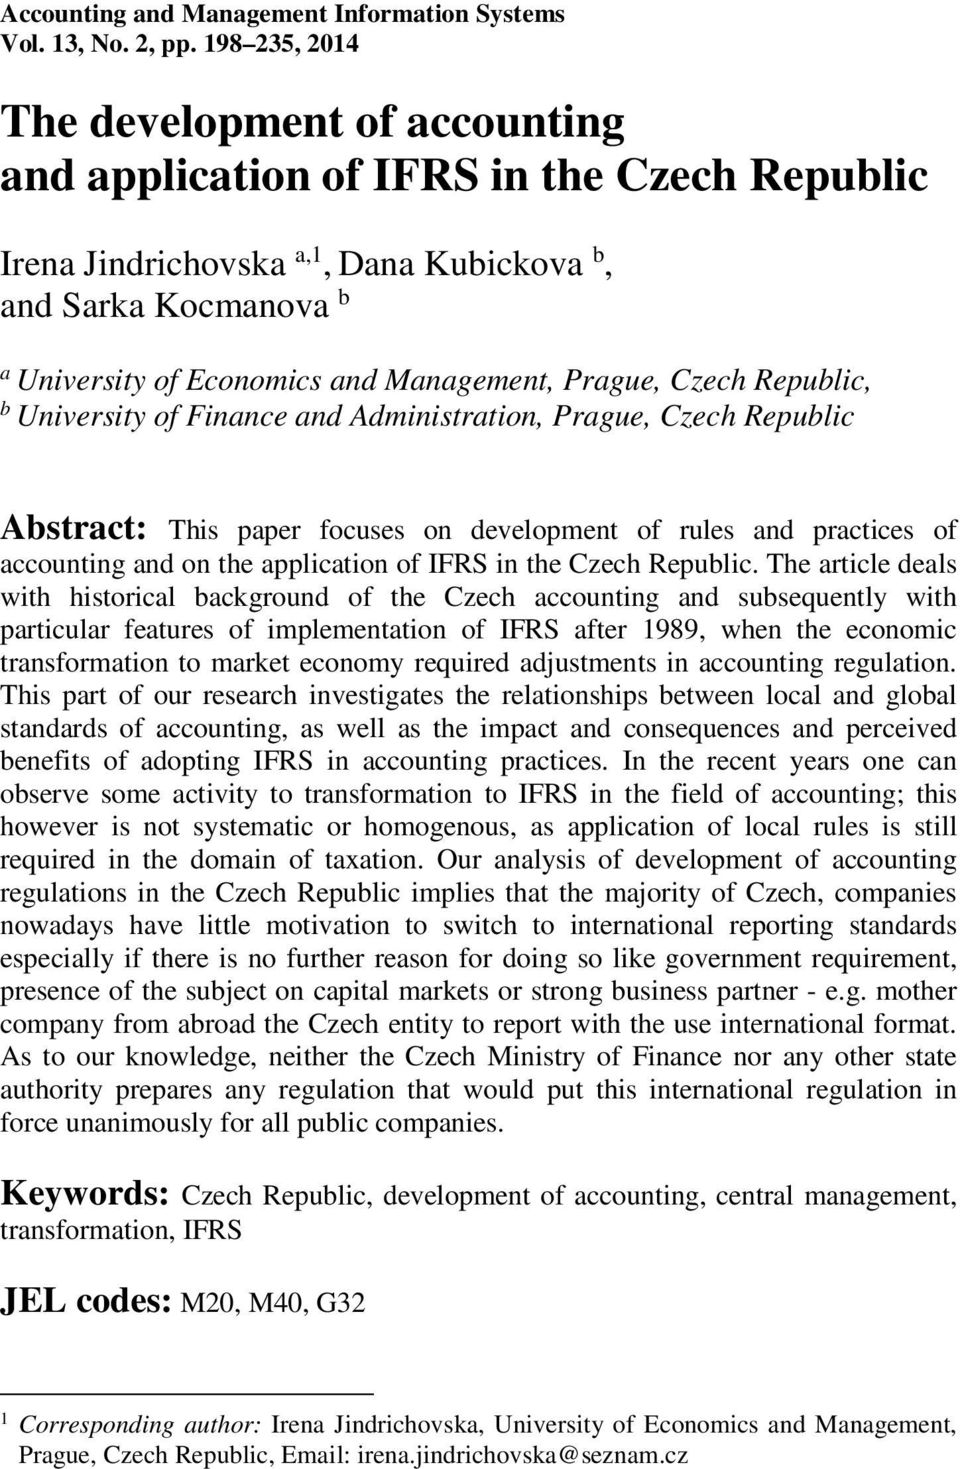 Prague, Czech Republic, b University of Finance and Administration, Prague, Czech Republic Abstract: This paper focuses on development of rules and practices of accounting and on the application of